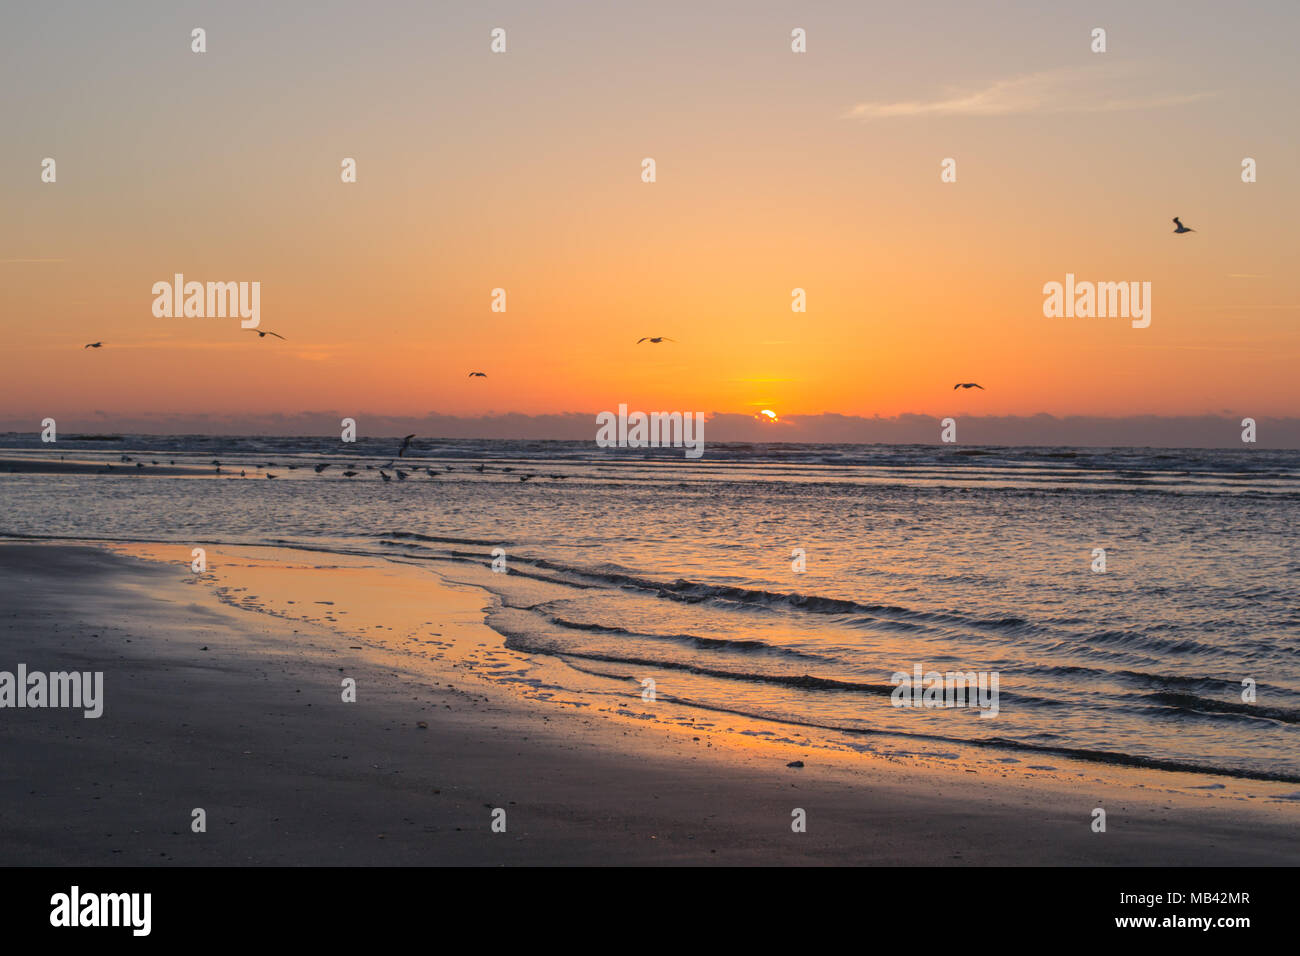 Greet The Morning Or End Your Day Along The Beach As The Sun Dips